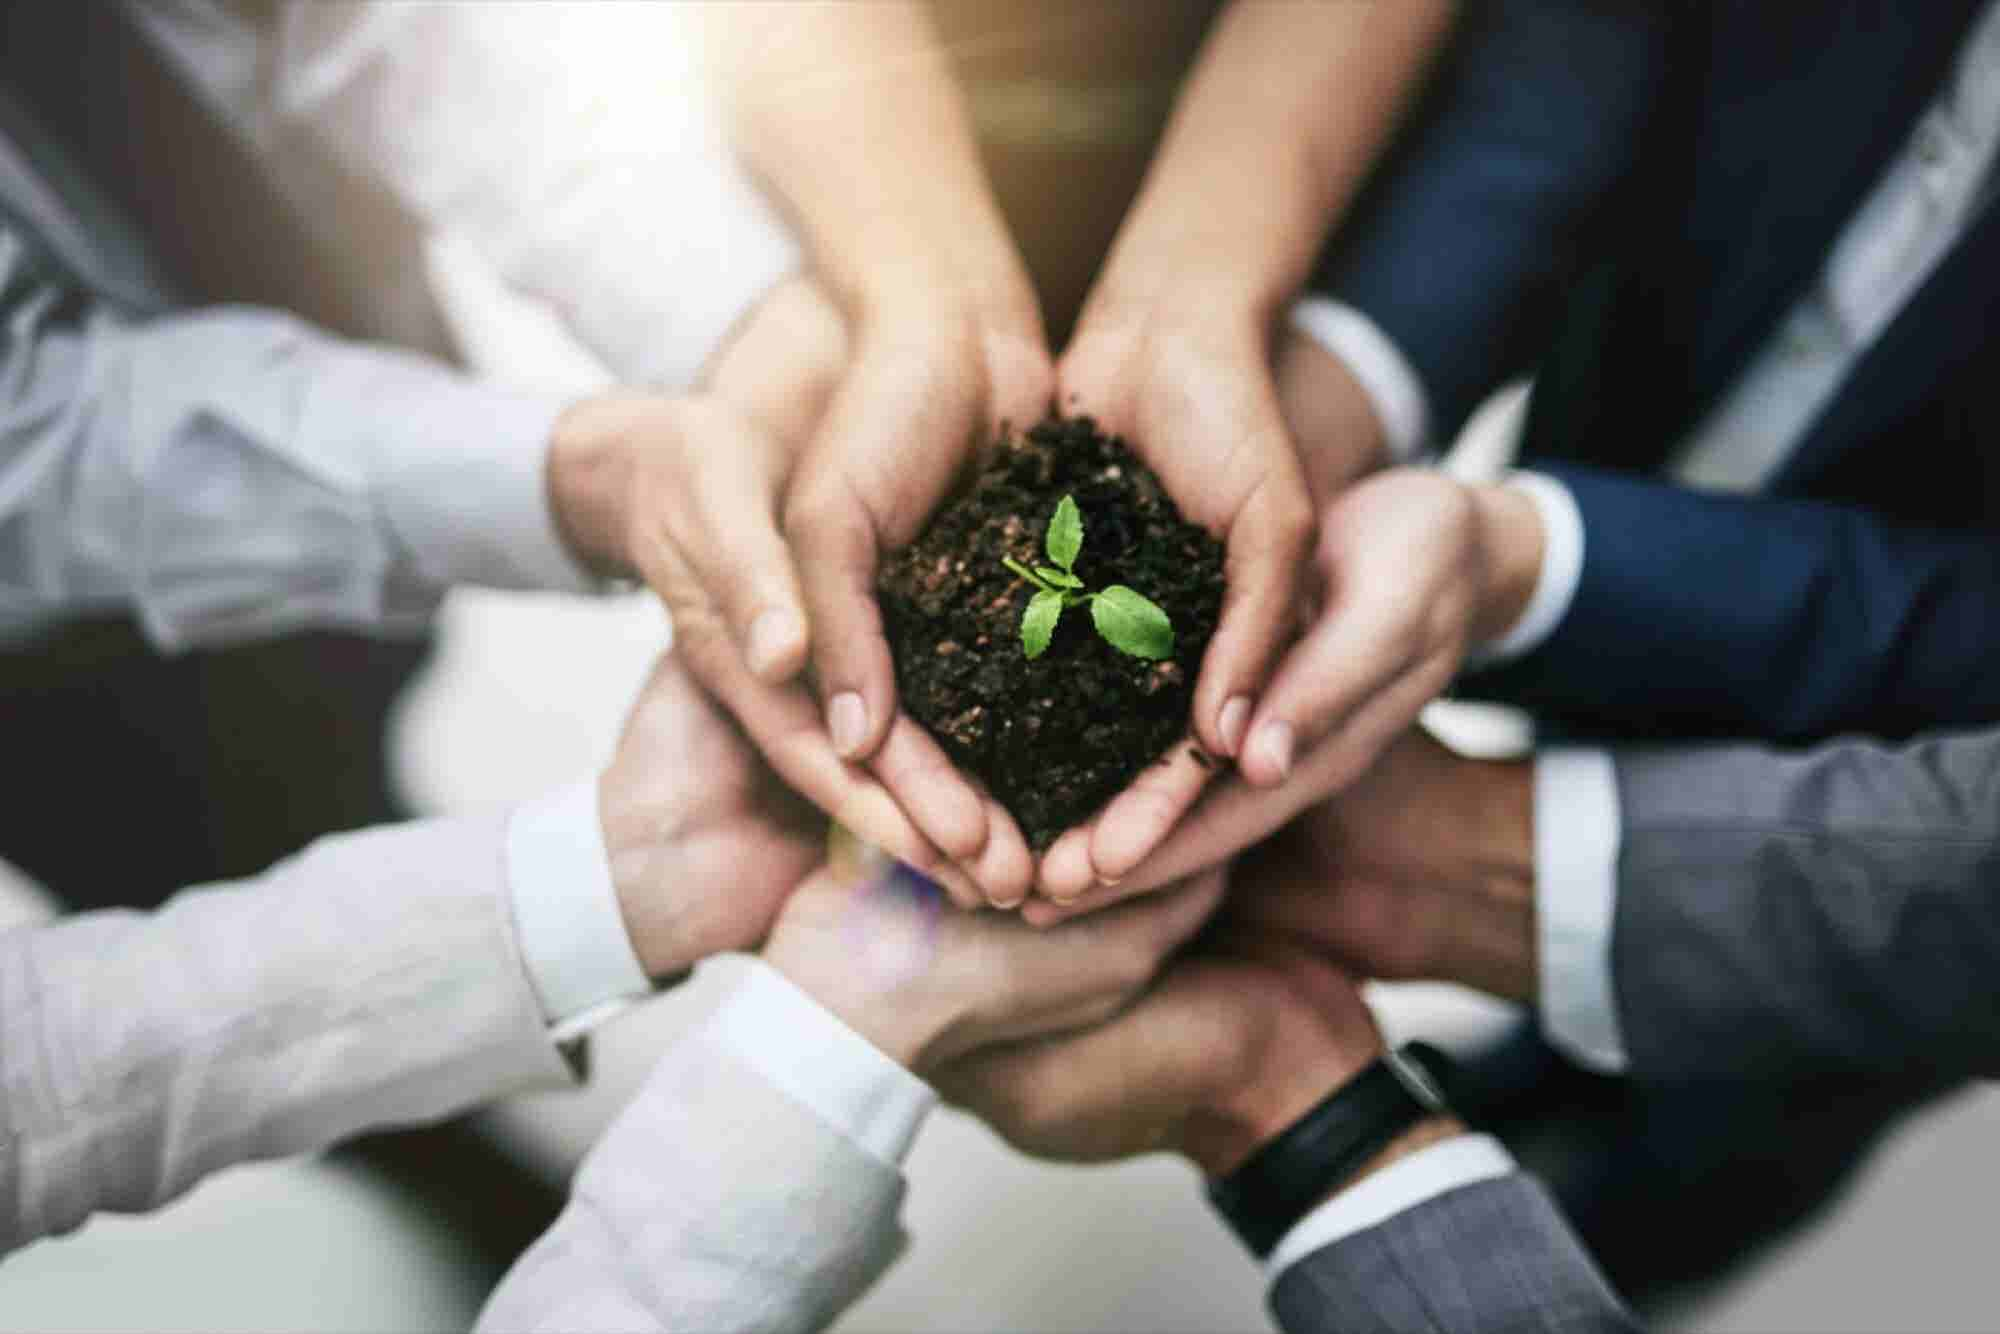 You Don't Have to Be All That Corporate to Make an Impact With Corporate Social Responsibility